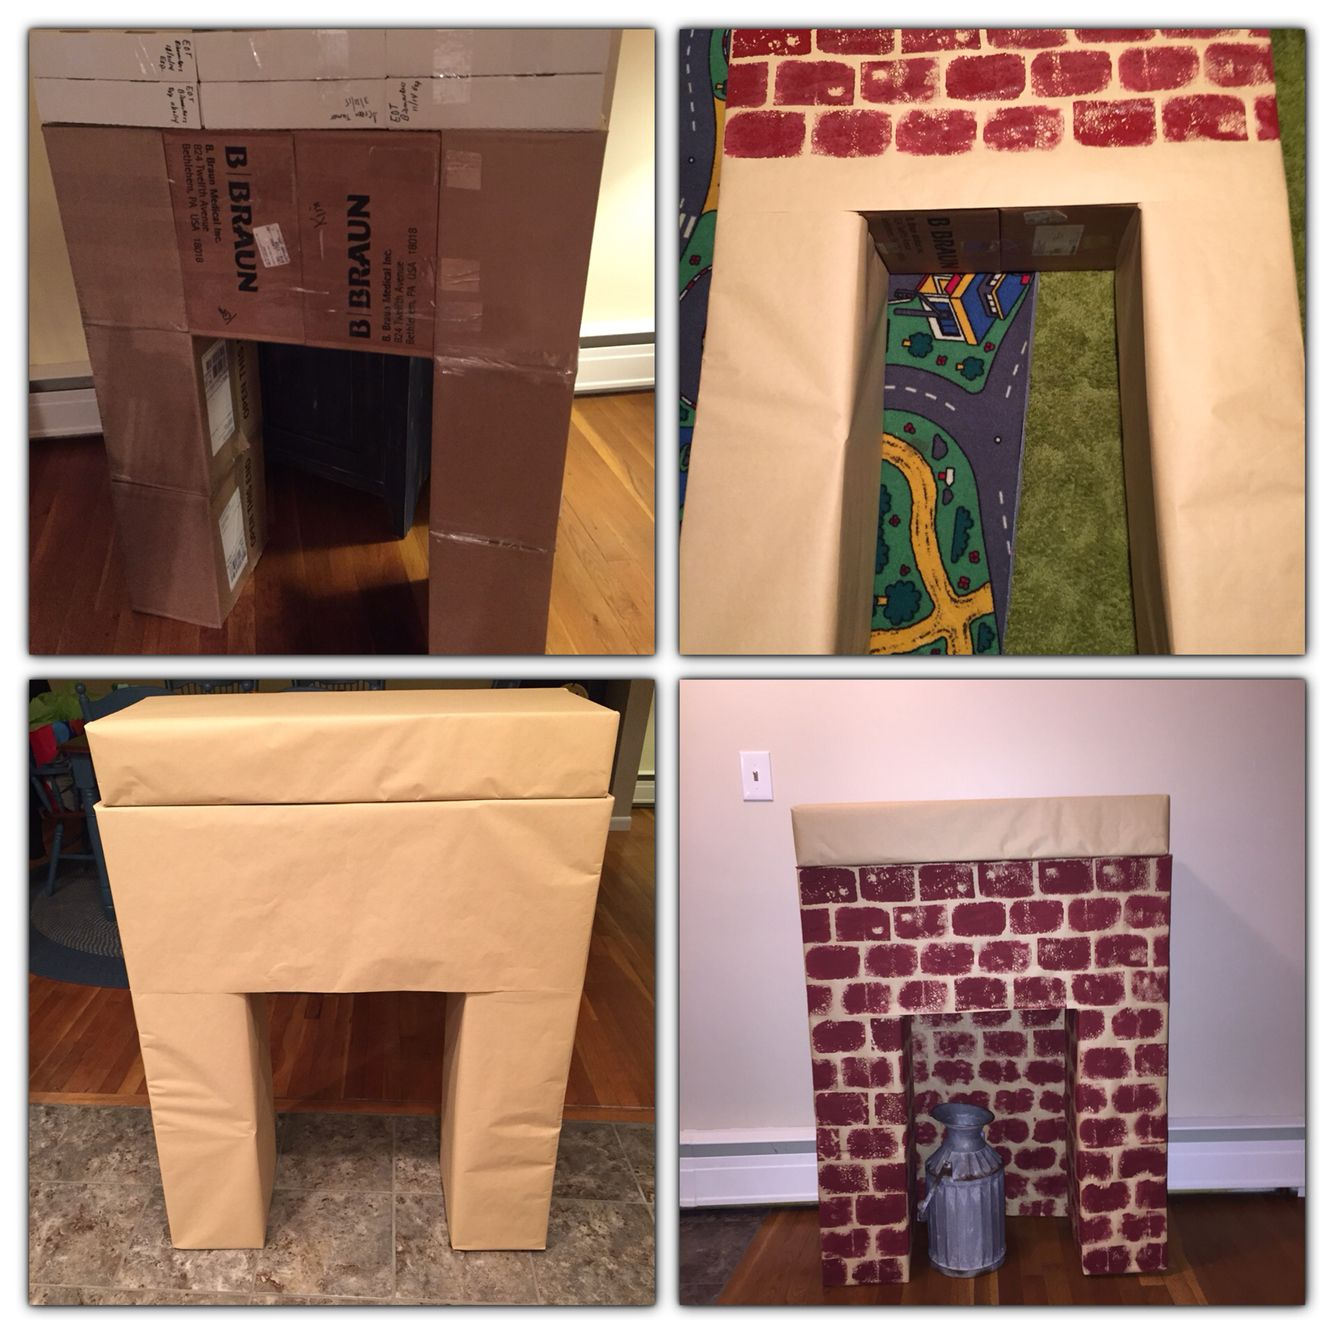 Diy fireplace for Christmas Taped some boxes together covered it